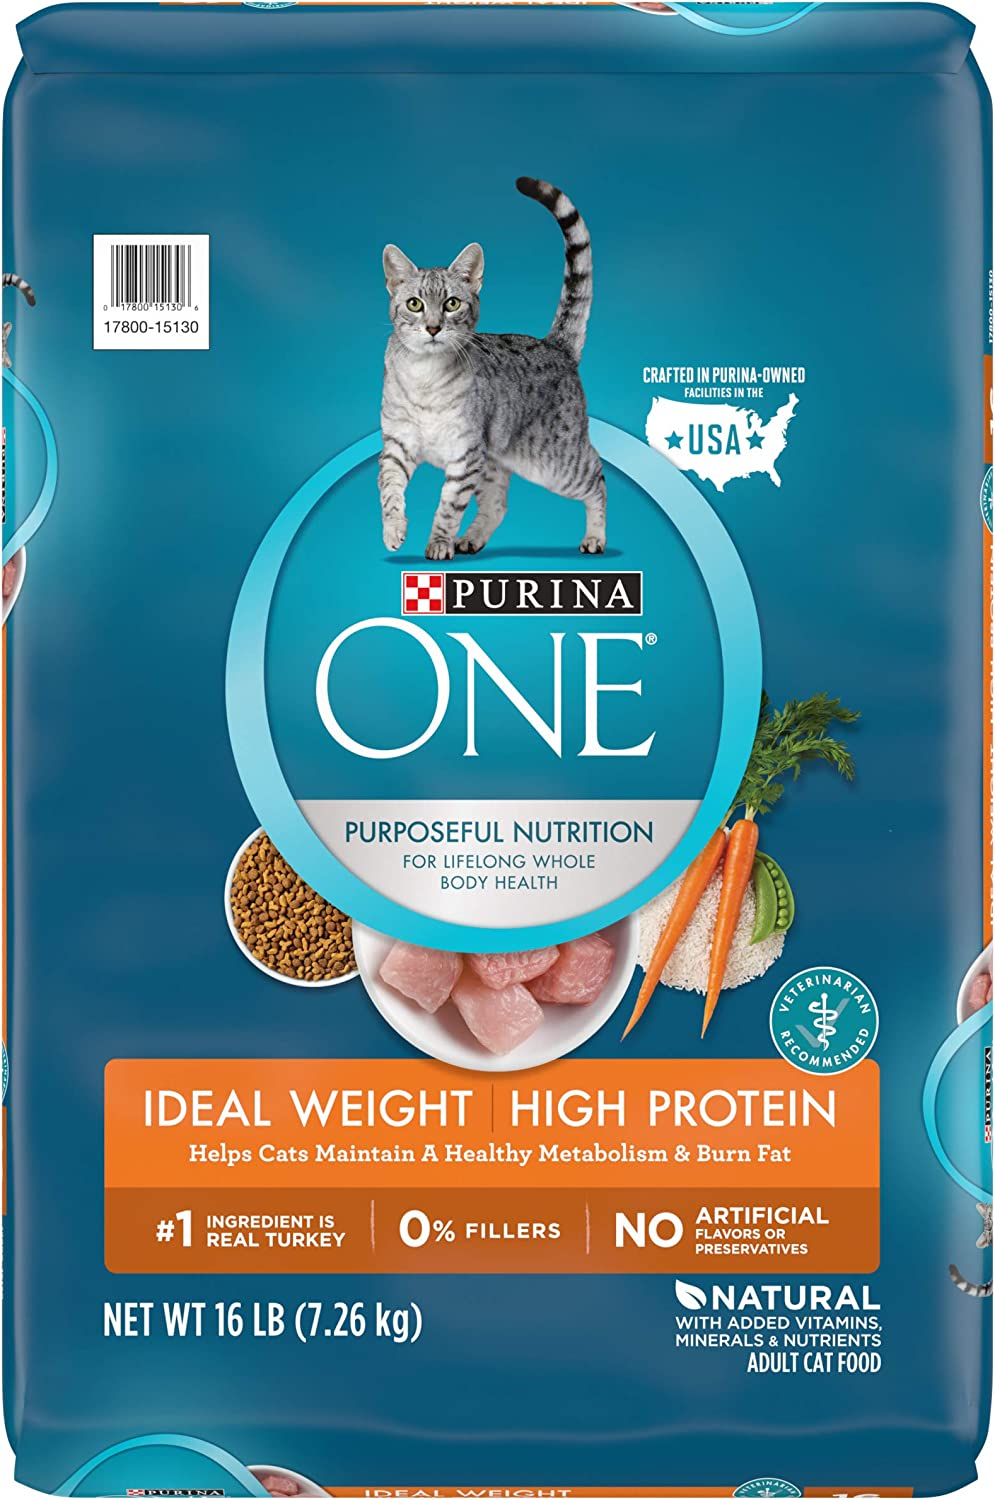 Purina ONE Adult Healthy Metabolism Dry Cat Food & Ideal Weight Wet Cat Food